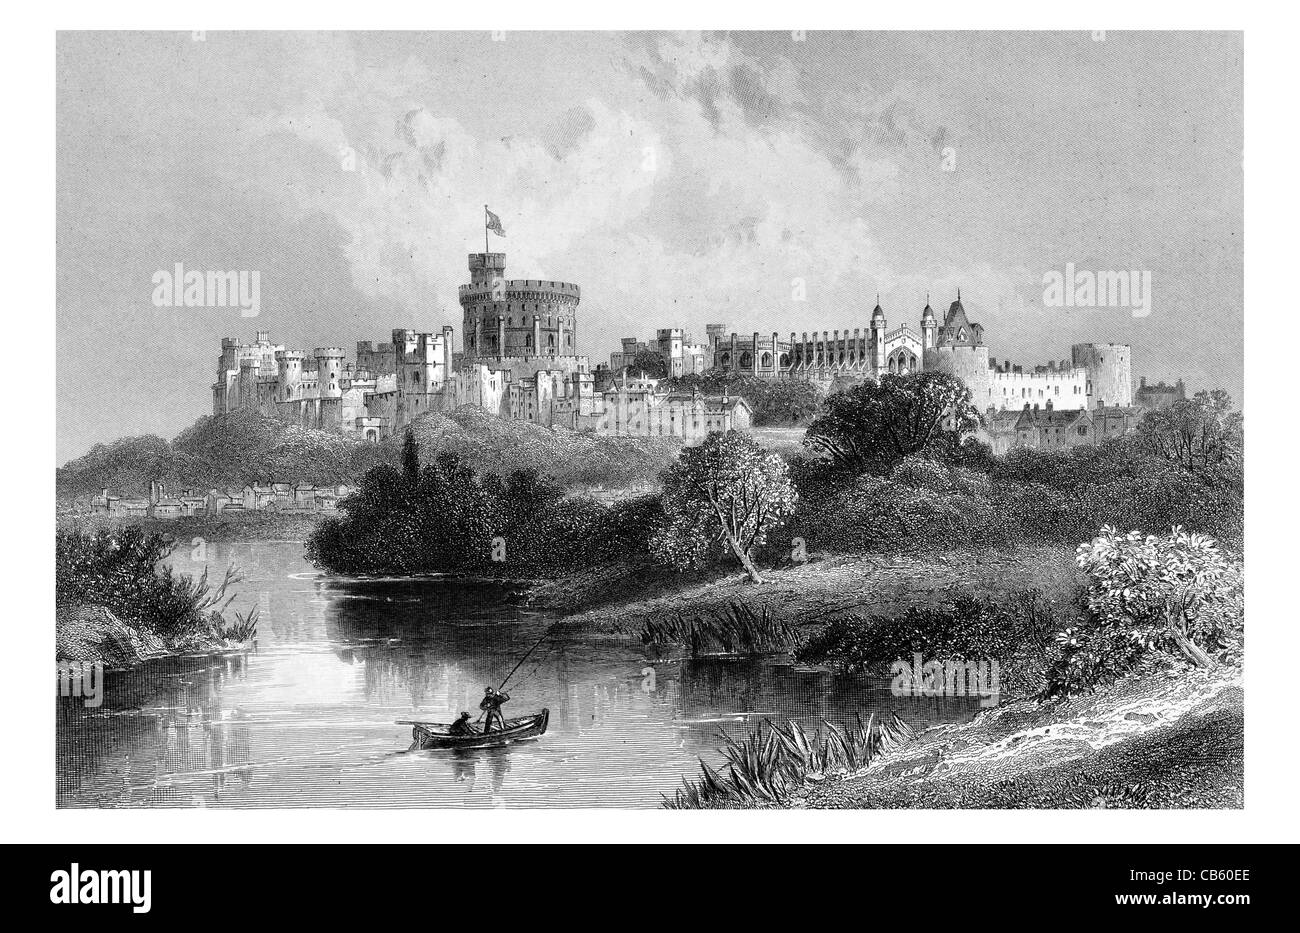 Windsor Castle medieval castle residence English Berkshire British royal family London river Thames fishing fisherman - Stock Image